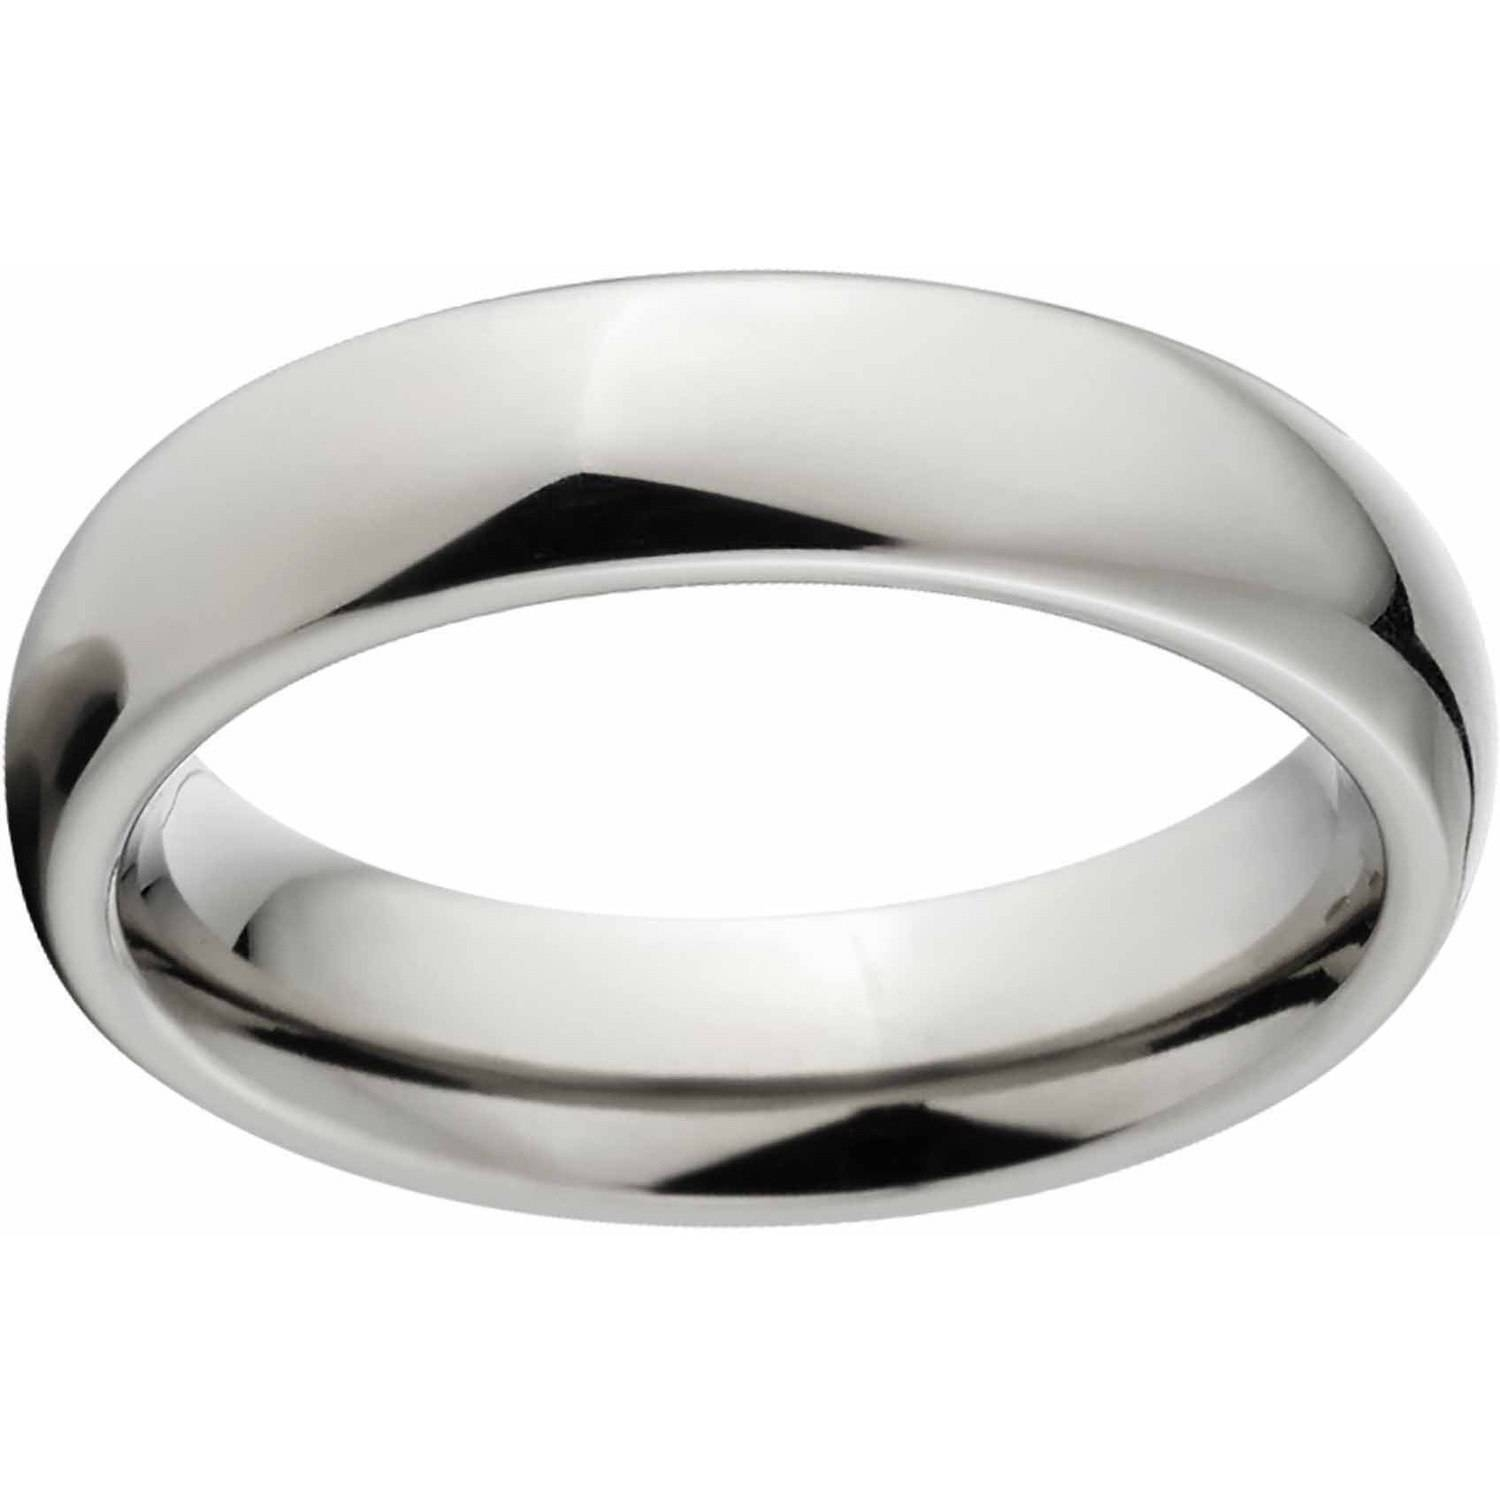 Polished 4Mm Titanium Wedding Band With Comfort Fit Design In Titanium Mens Wedding Bands (Gallery 14 of 15)